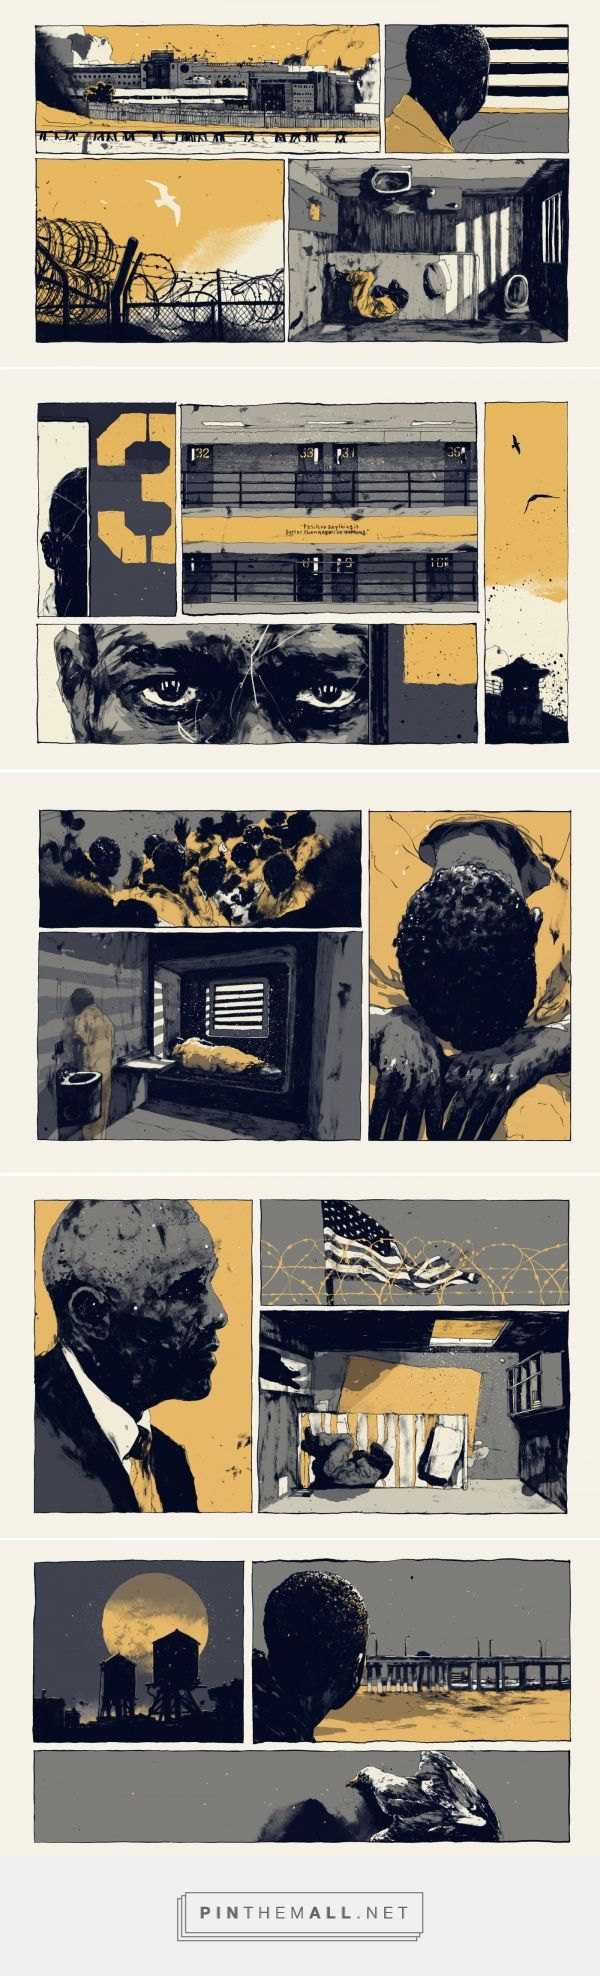 EDITORIALS 6 on Behance... - a grouped images picture - Pin Them All